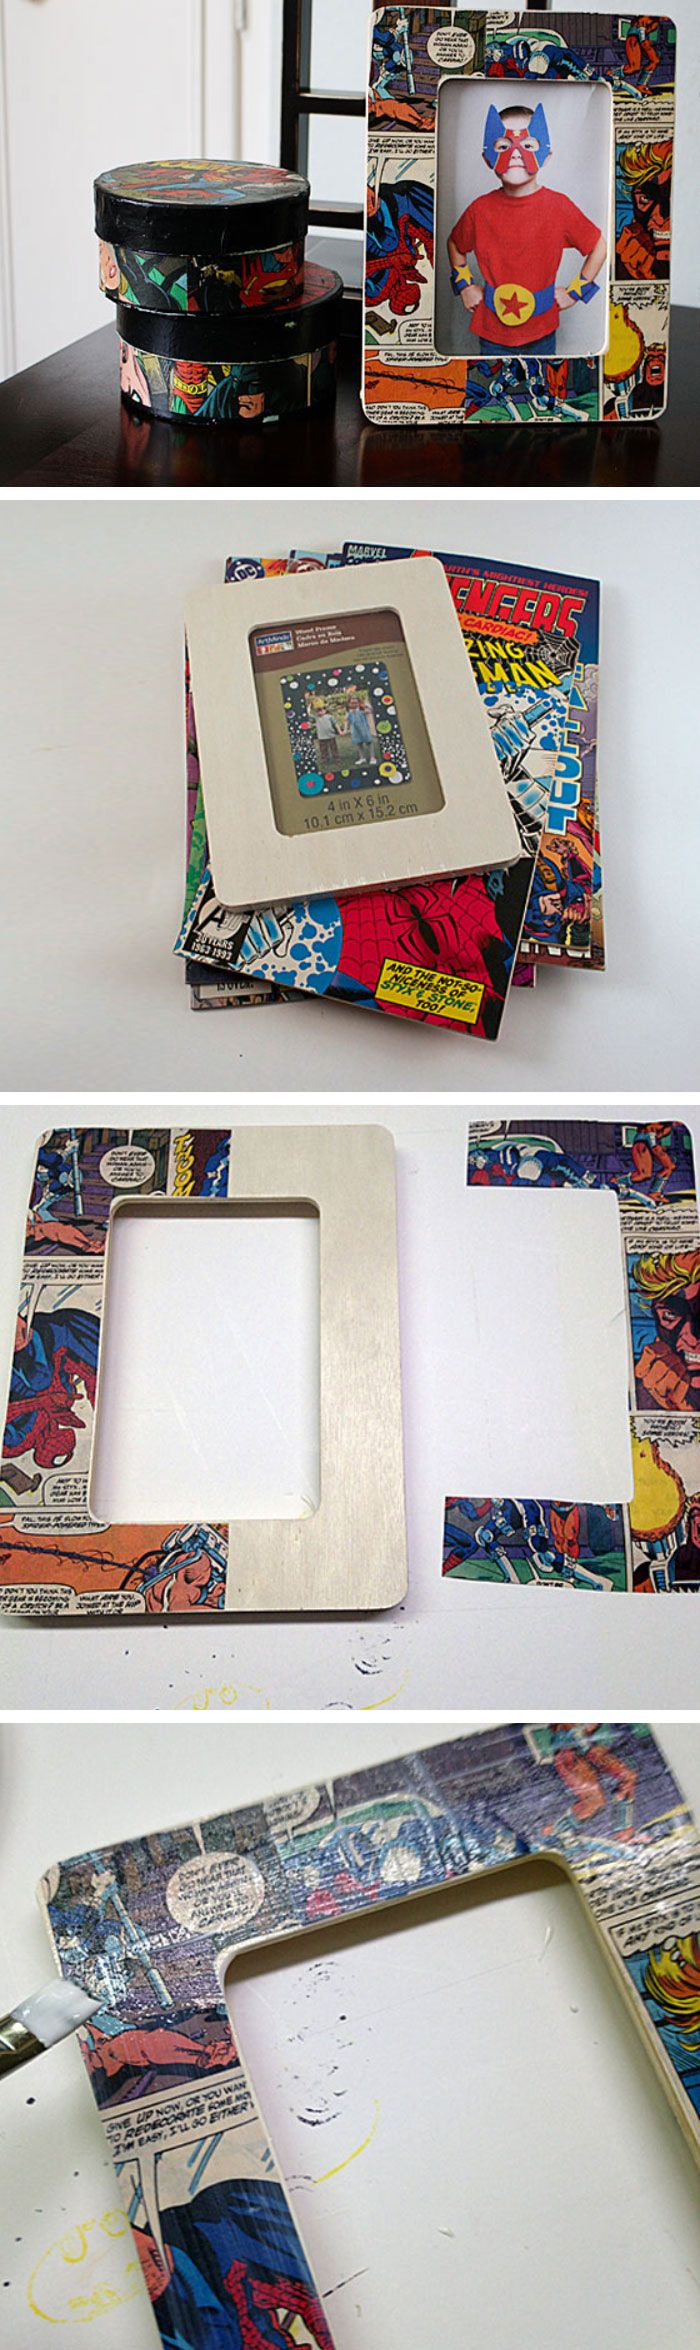 Decoupage Comic Book Frame   20 DIY Fathers Day Gift Ideas from Wife   DIY Holiday Gift Ideas for Men